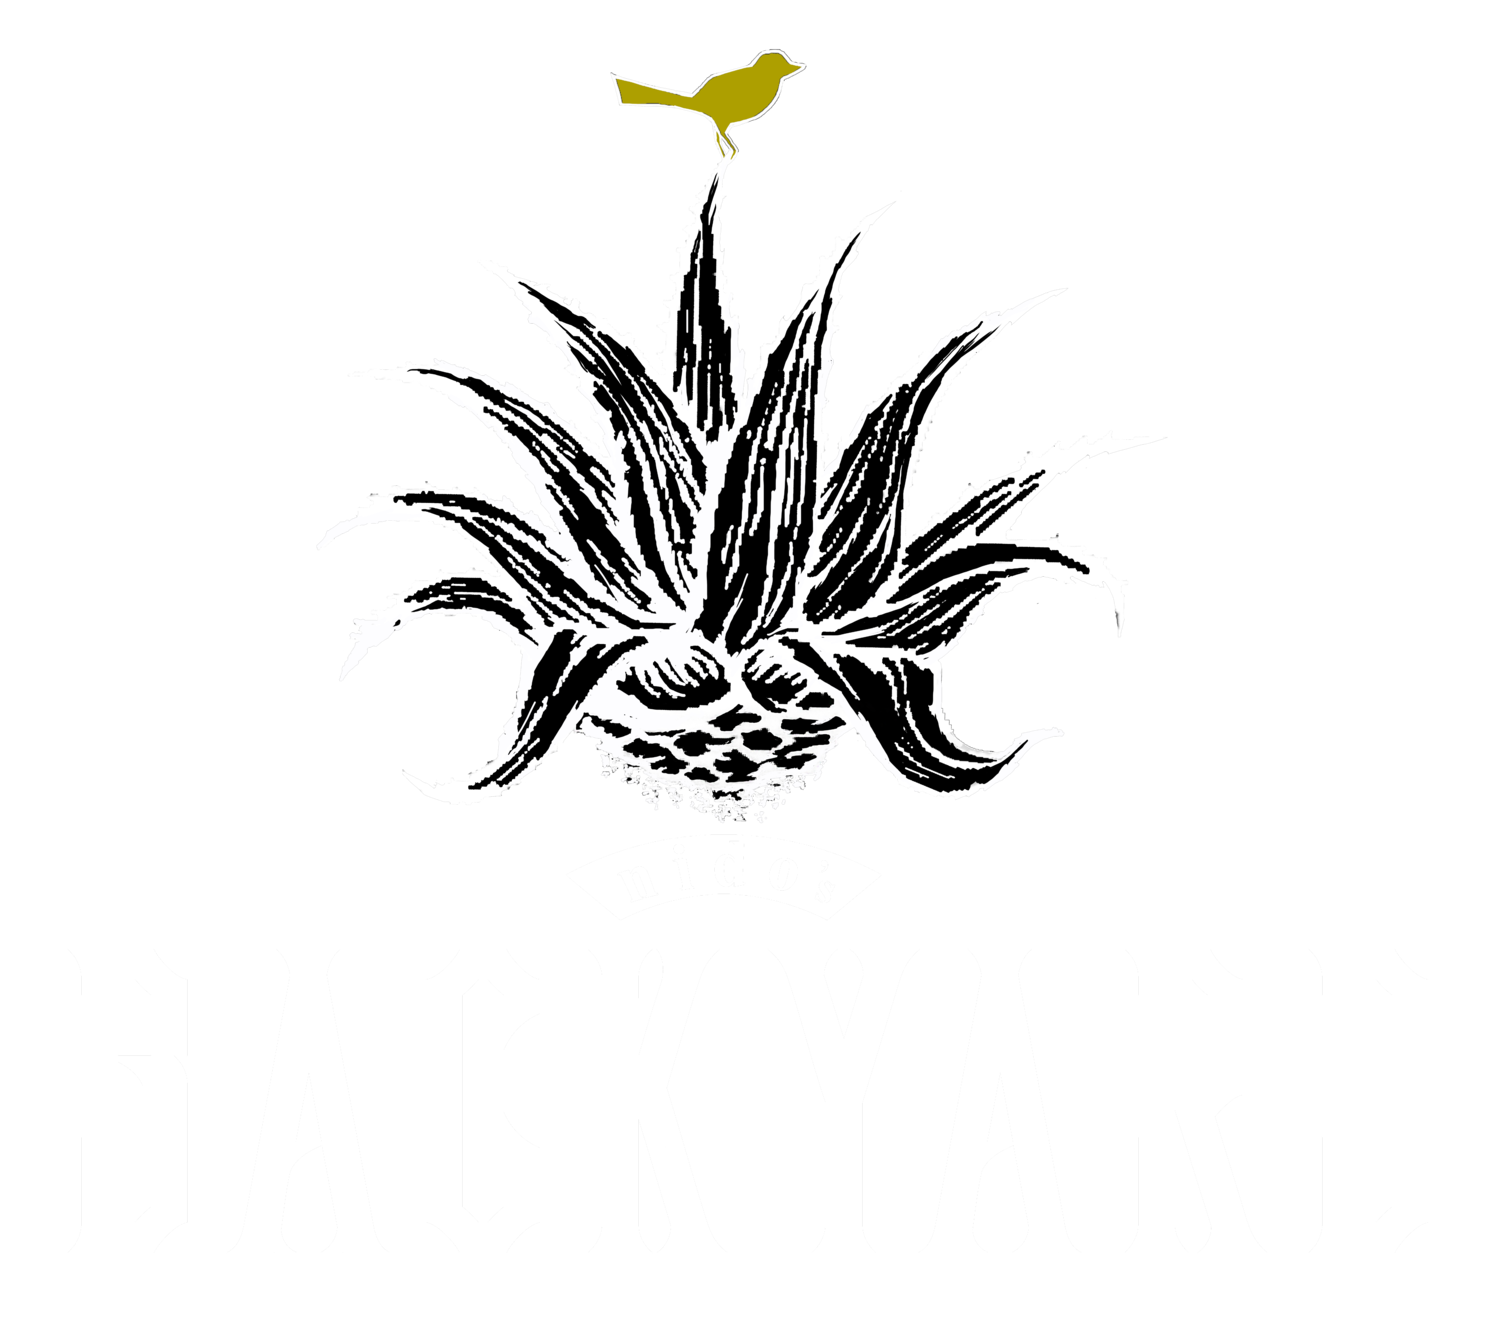 THE BACKYARD - OAKLAND